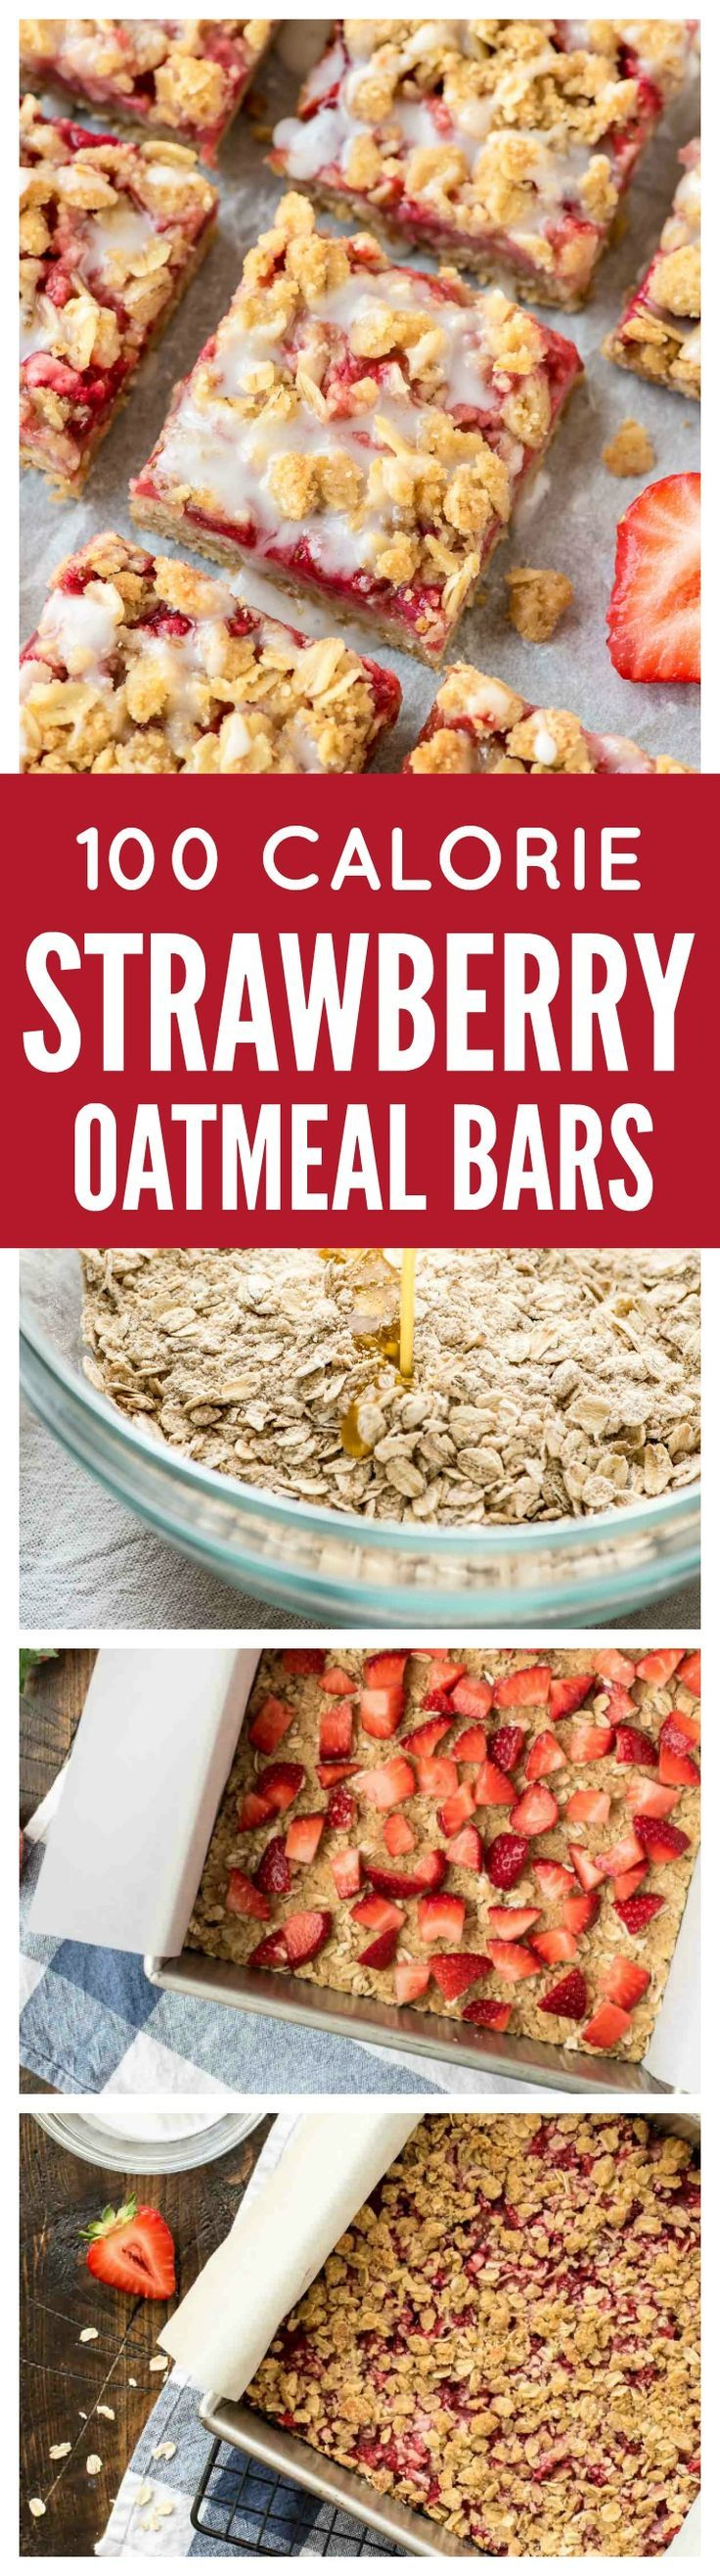 These Buttery Strawberry Oatmeal Bars Are Only 100 Calories Each!! With A  Buttery Crust